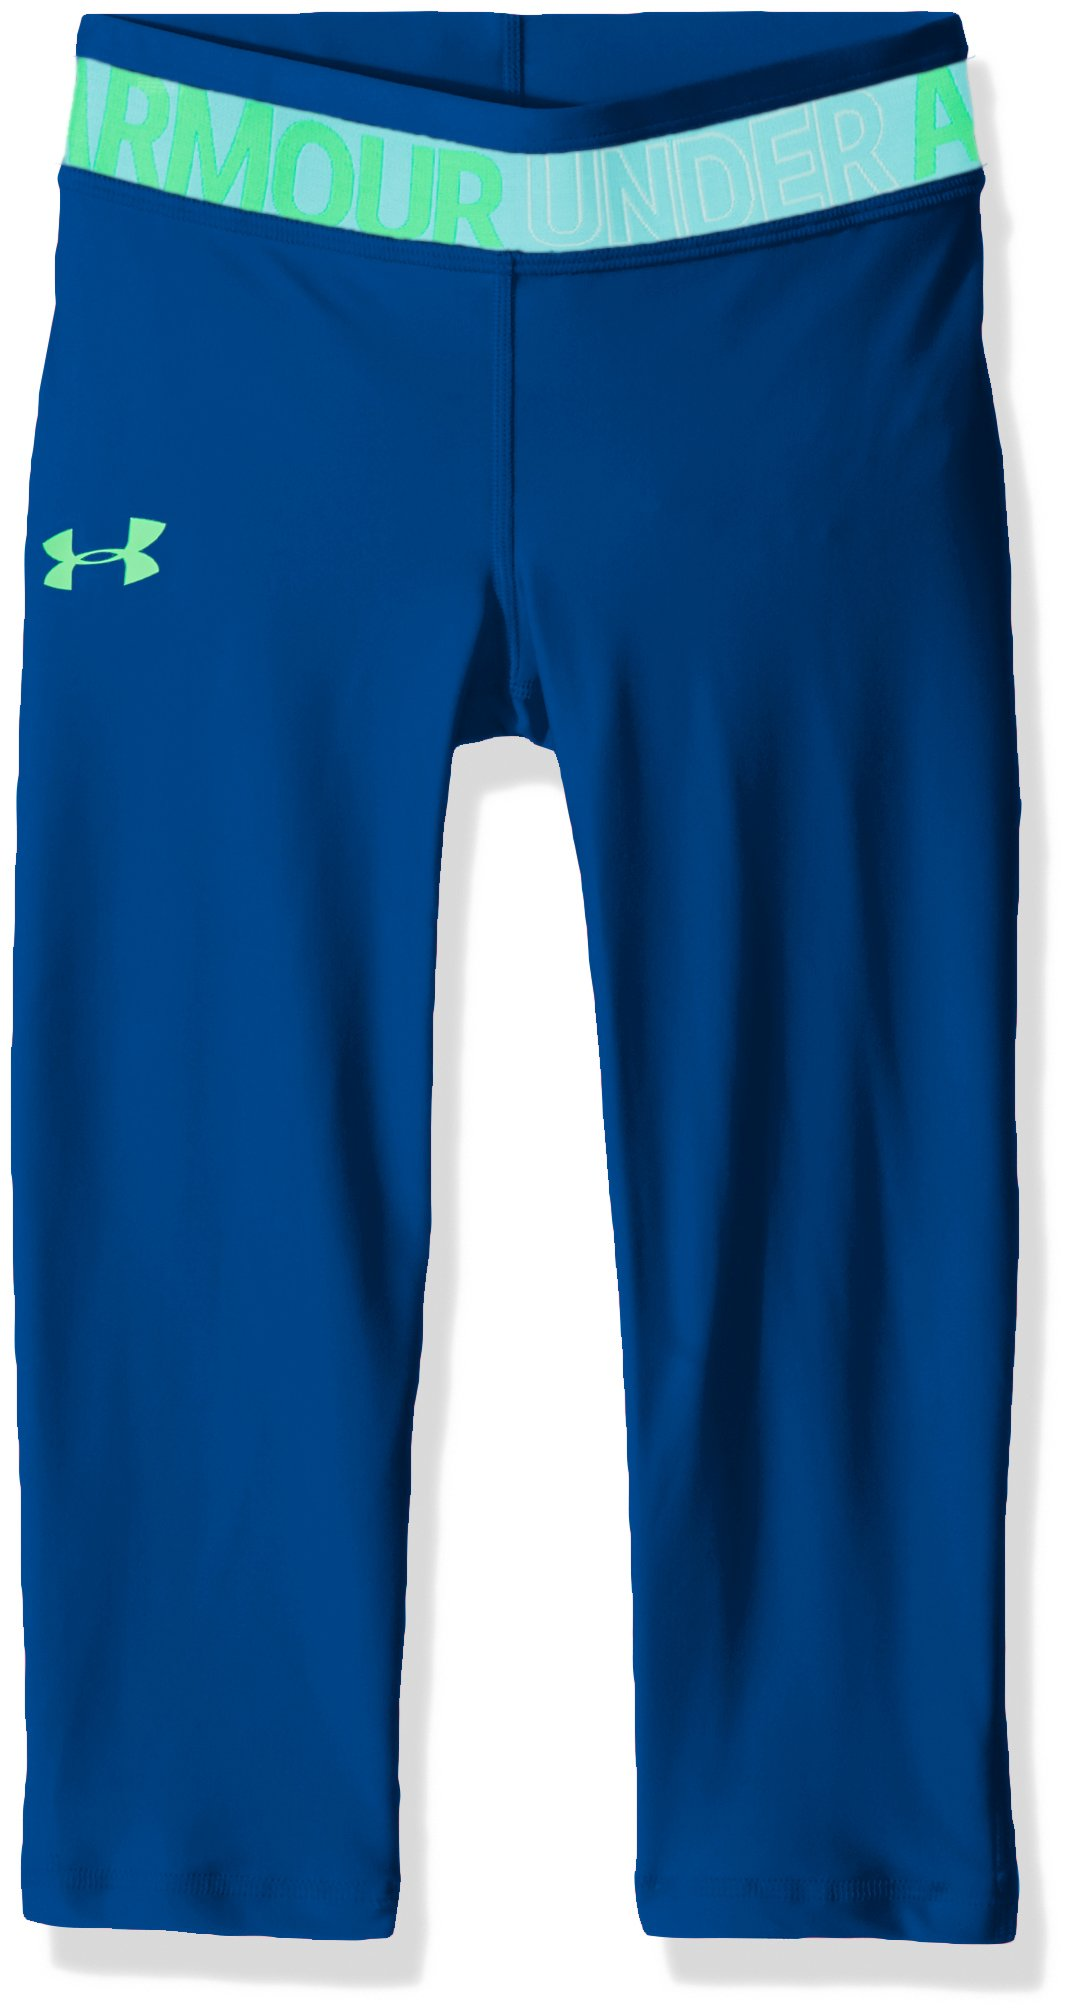 Under Armour Girls' HeatGear Armour Capris, Moroccan Blue /Arena Green, Youth X-Small